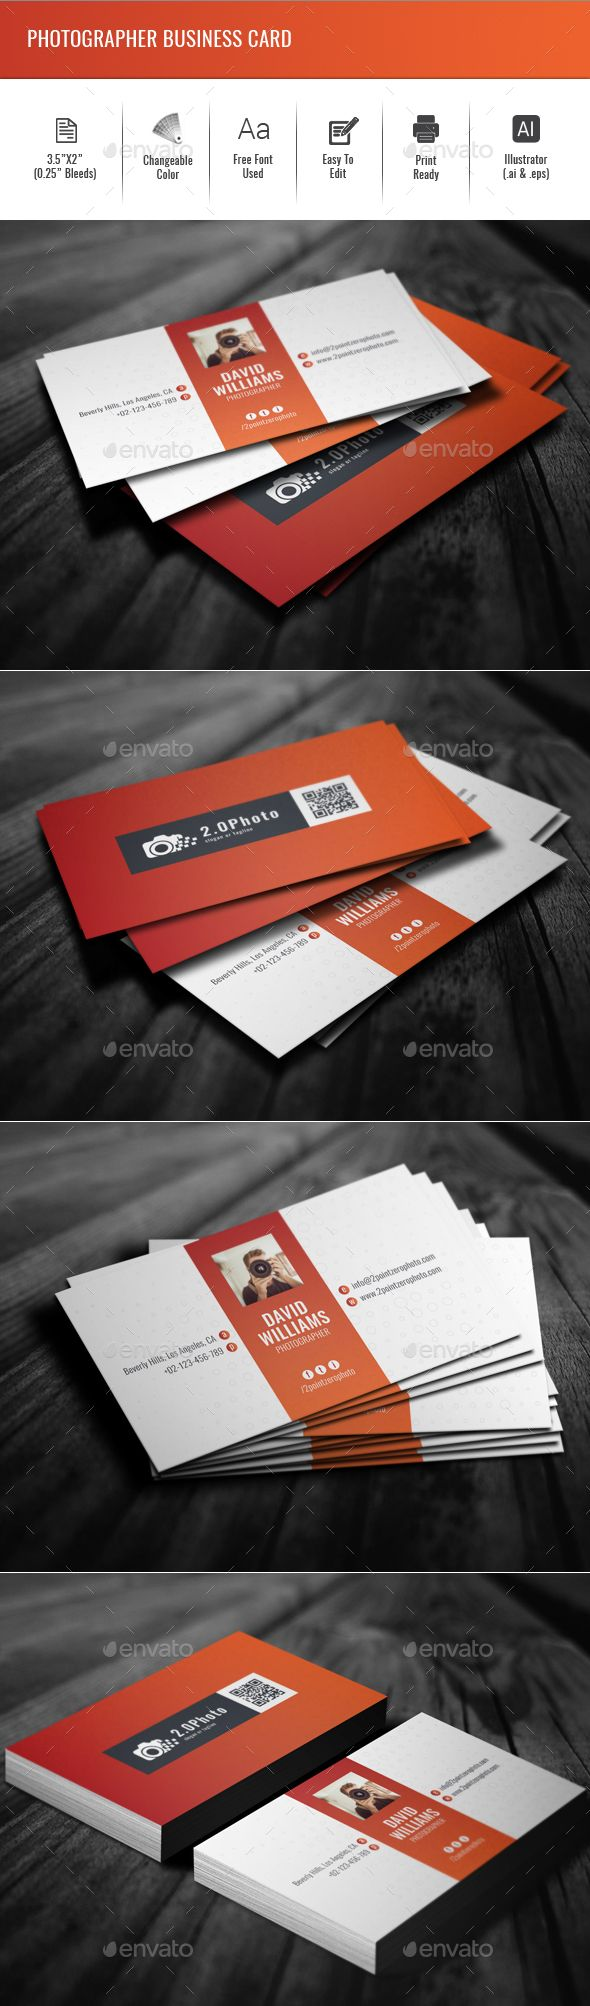 12 best business cards images on pinterest carte de visite photographer business card creative business cards download here https reheart Choice Image